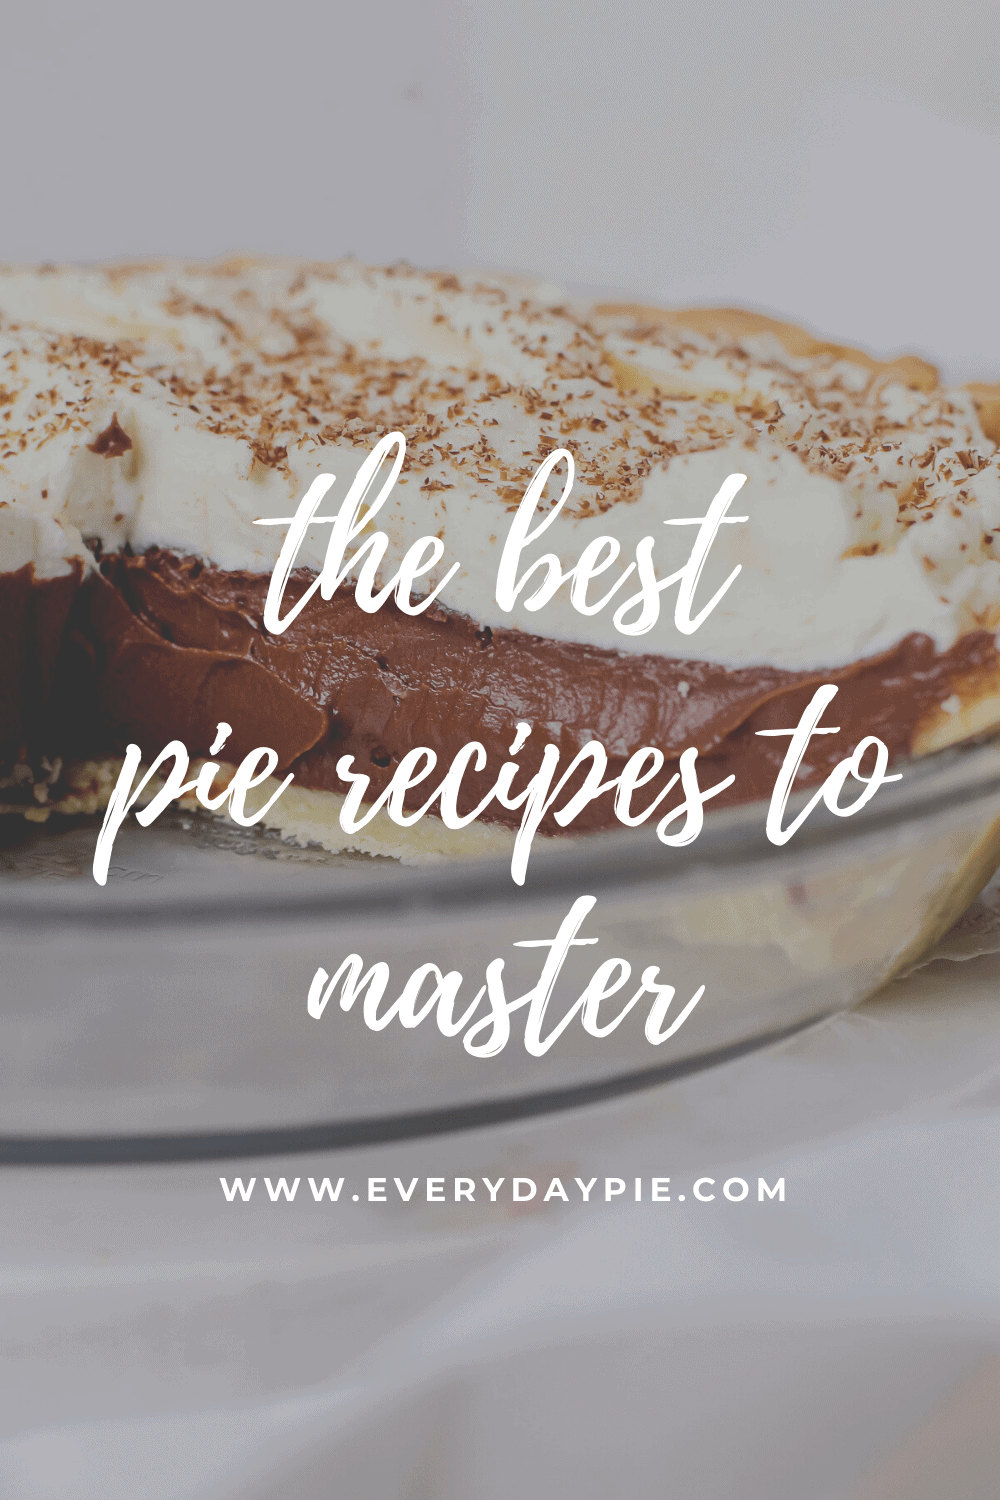 A chocolate cream pie with text overlay of the best pie recipes to master.